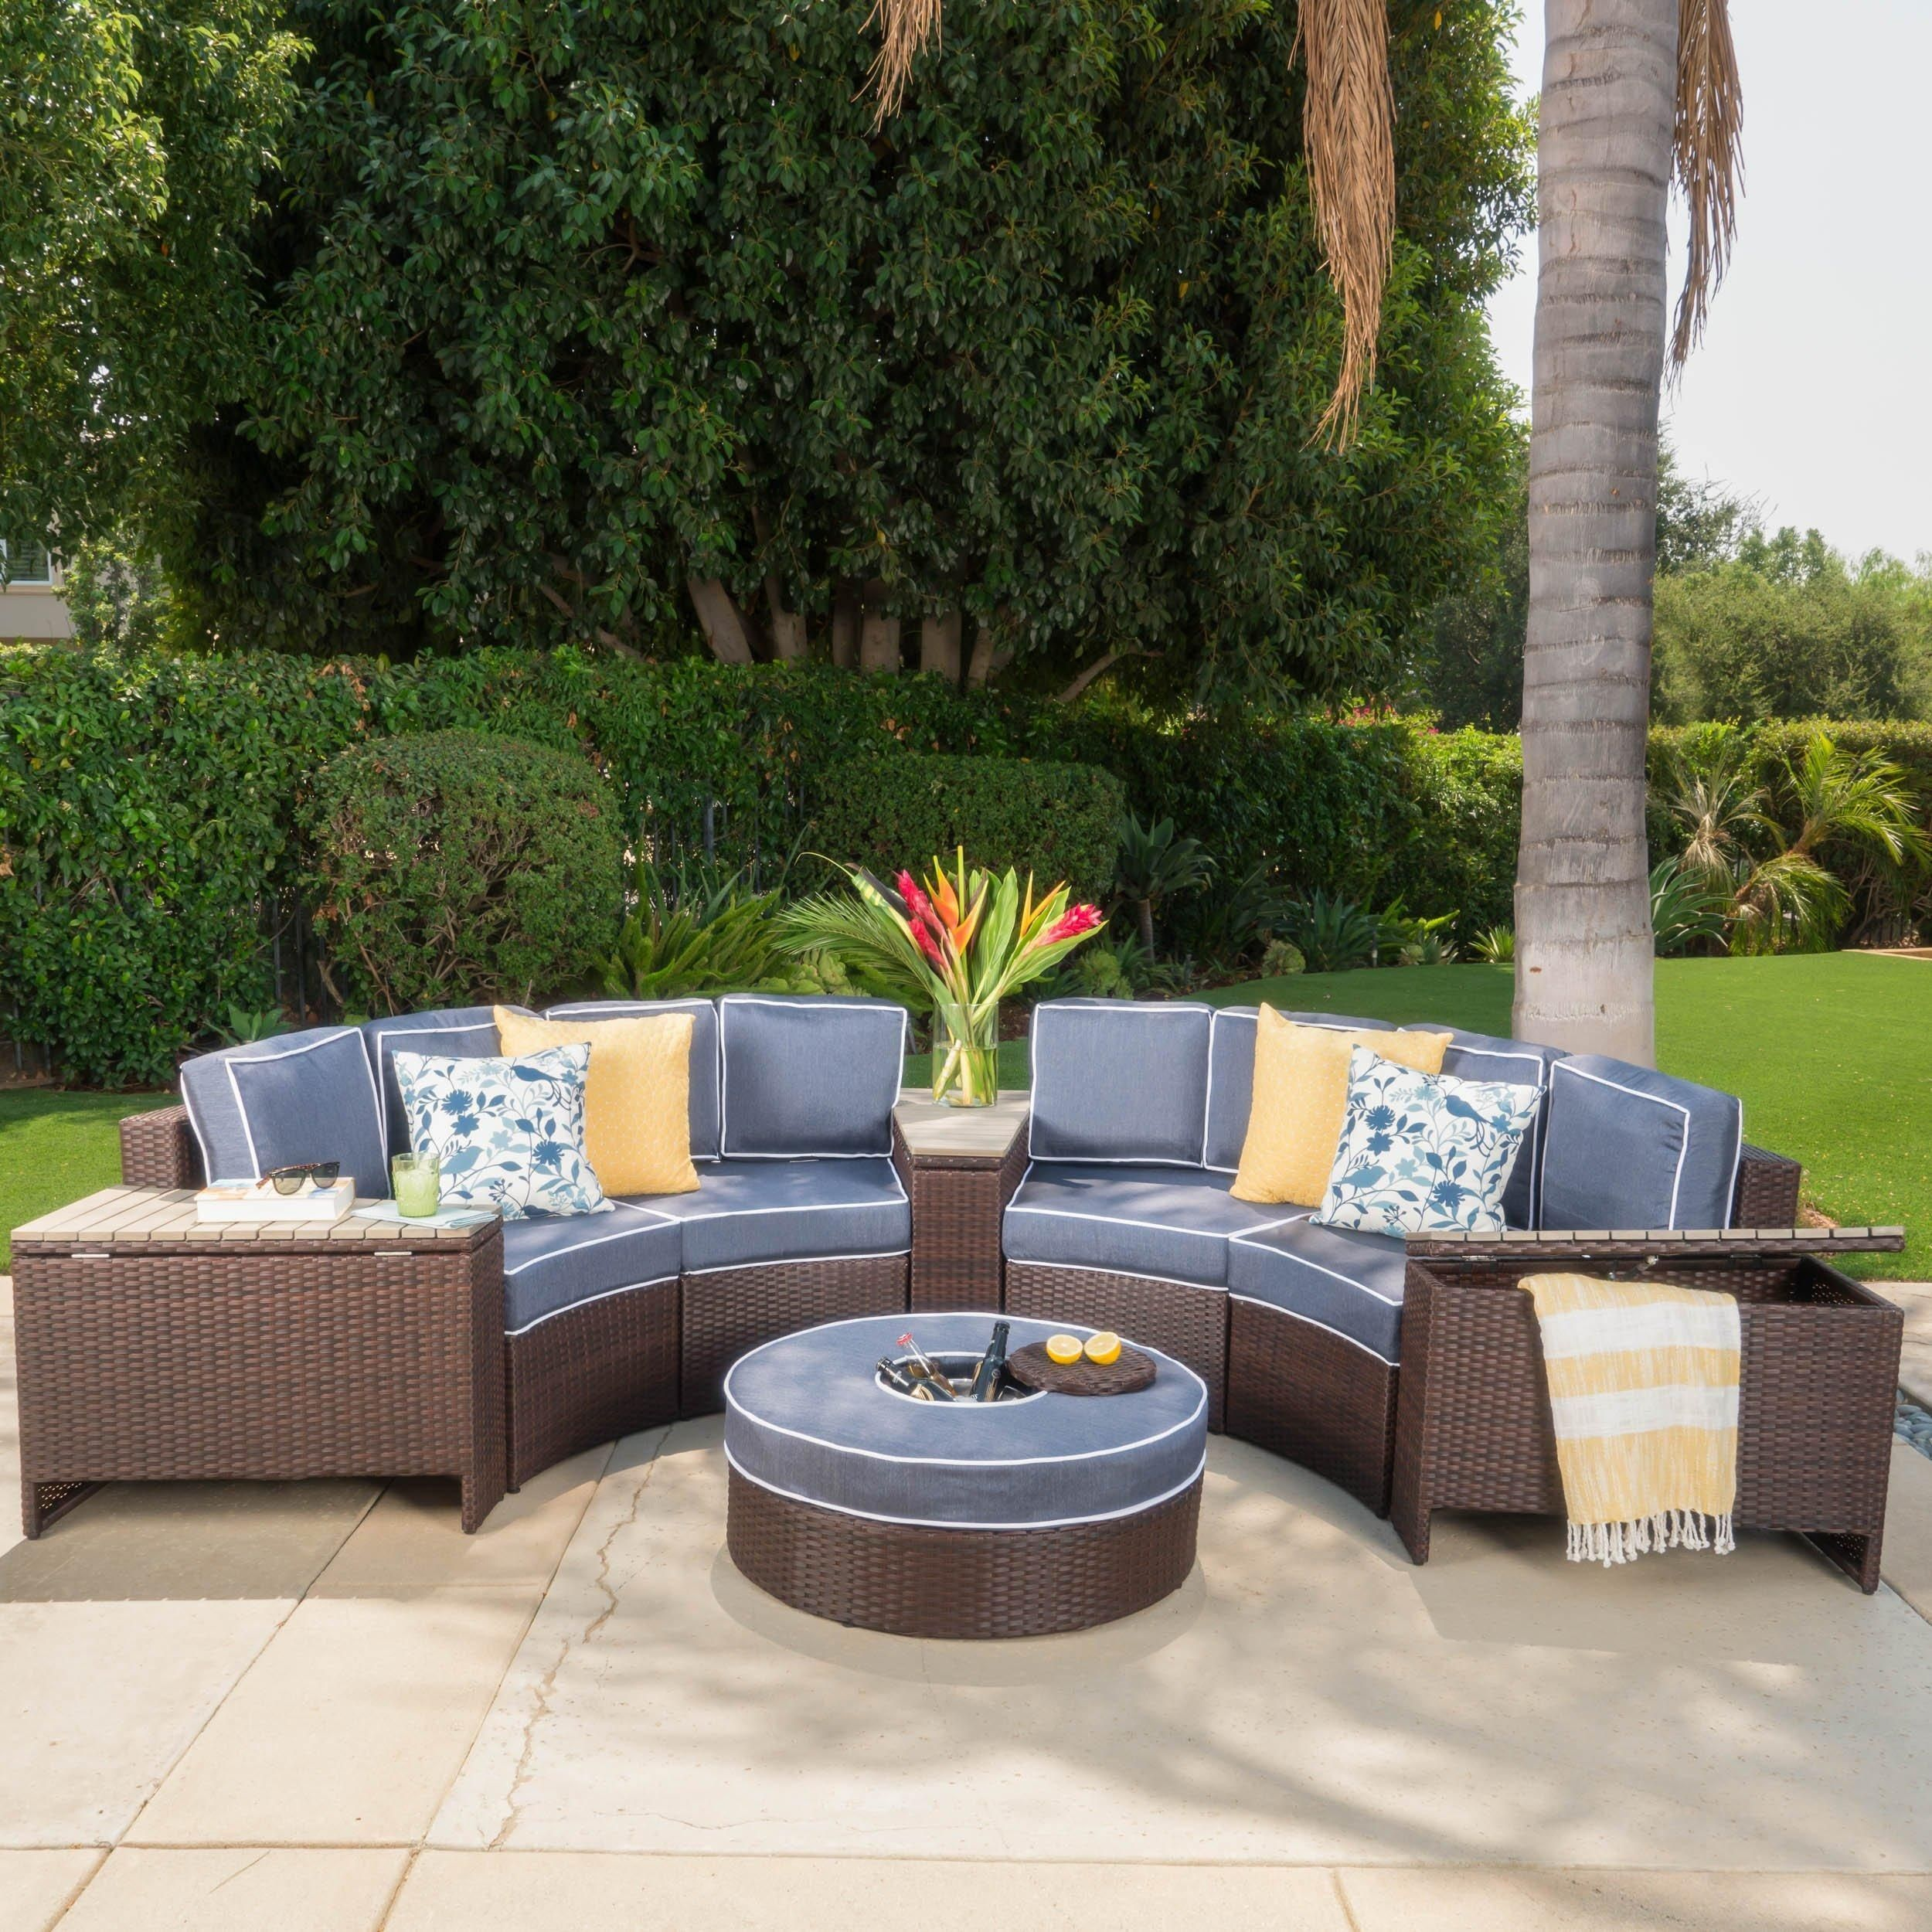 furniture styles outdoor of fresh cushions replacement pixelmari patio cheap